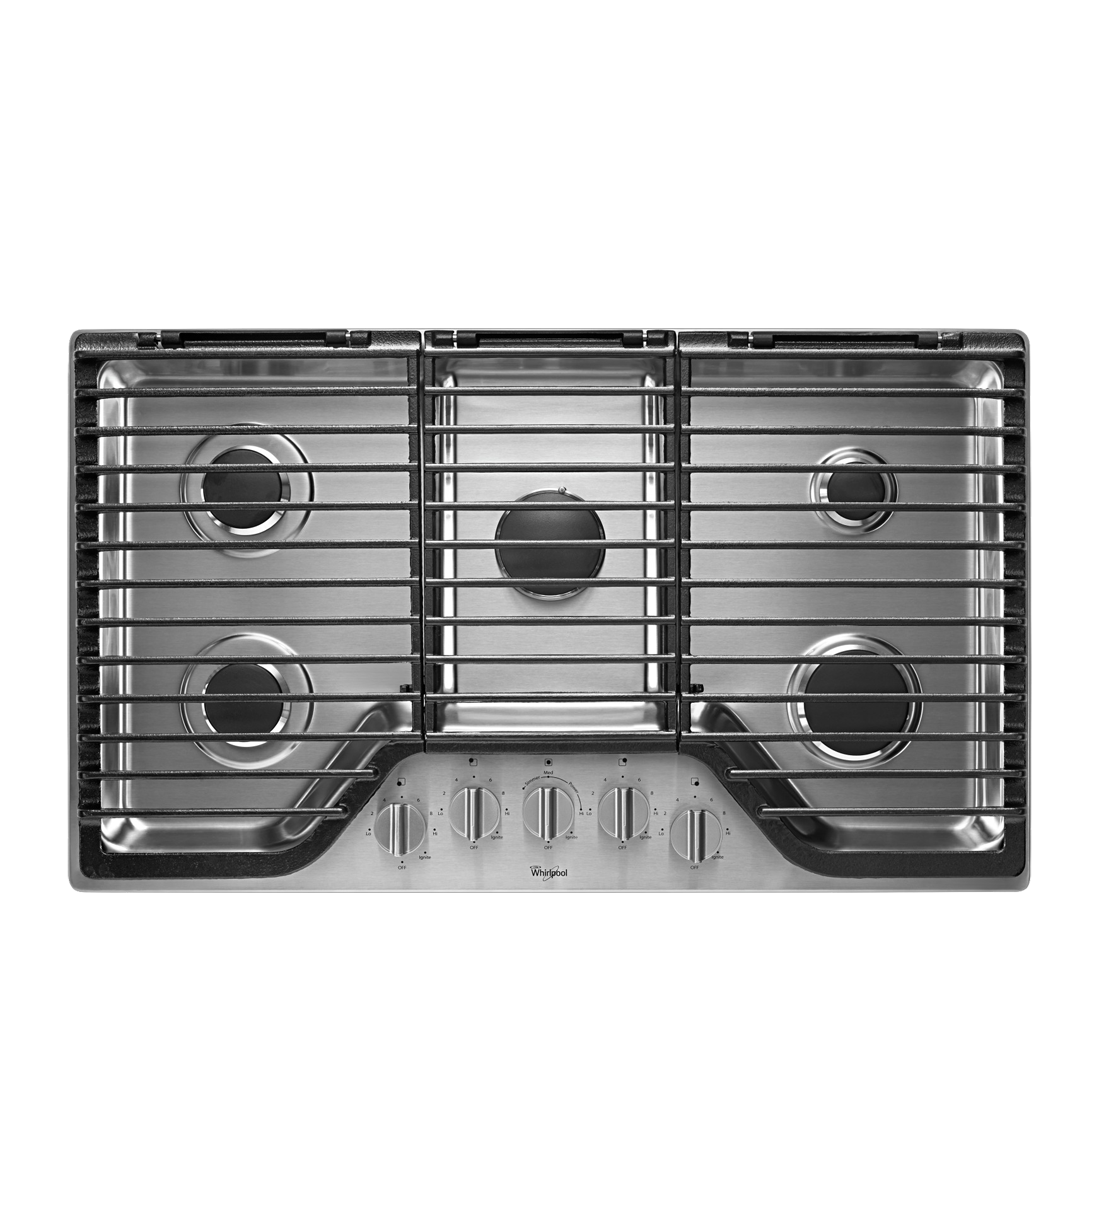 Whirlpool Cooktop in Stainless Steel color showcased by Corbeil Electro Store